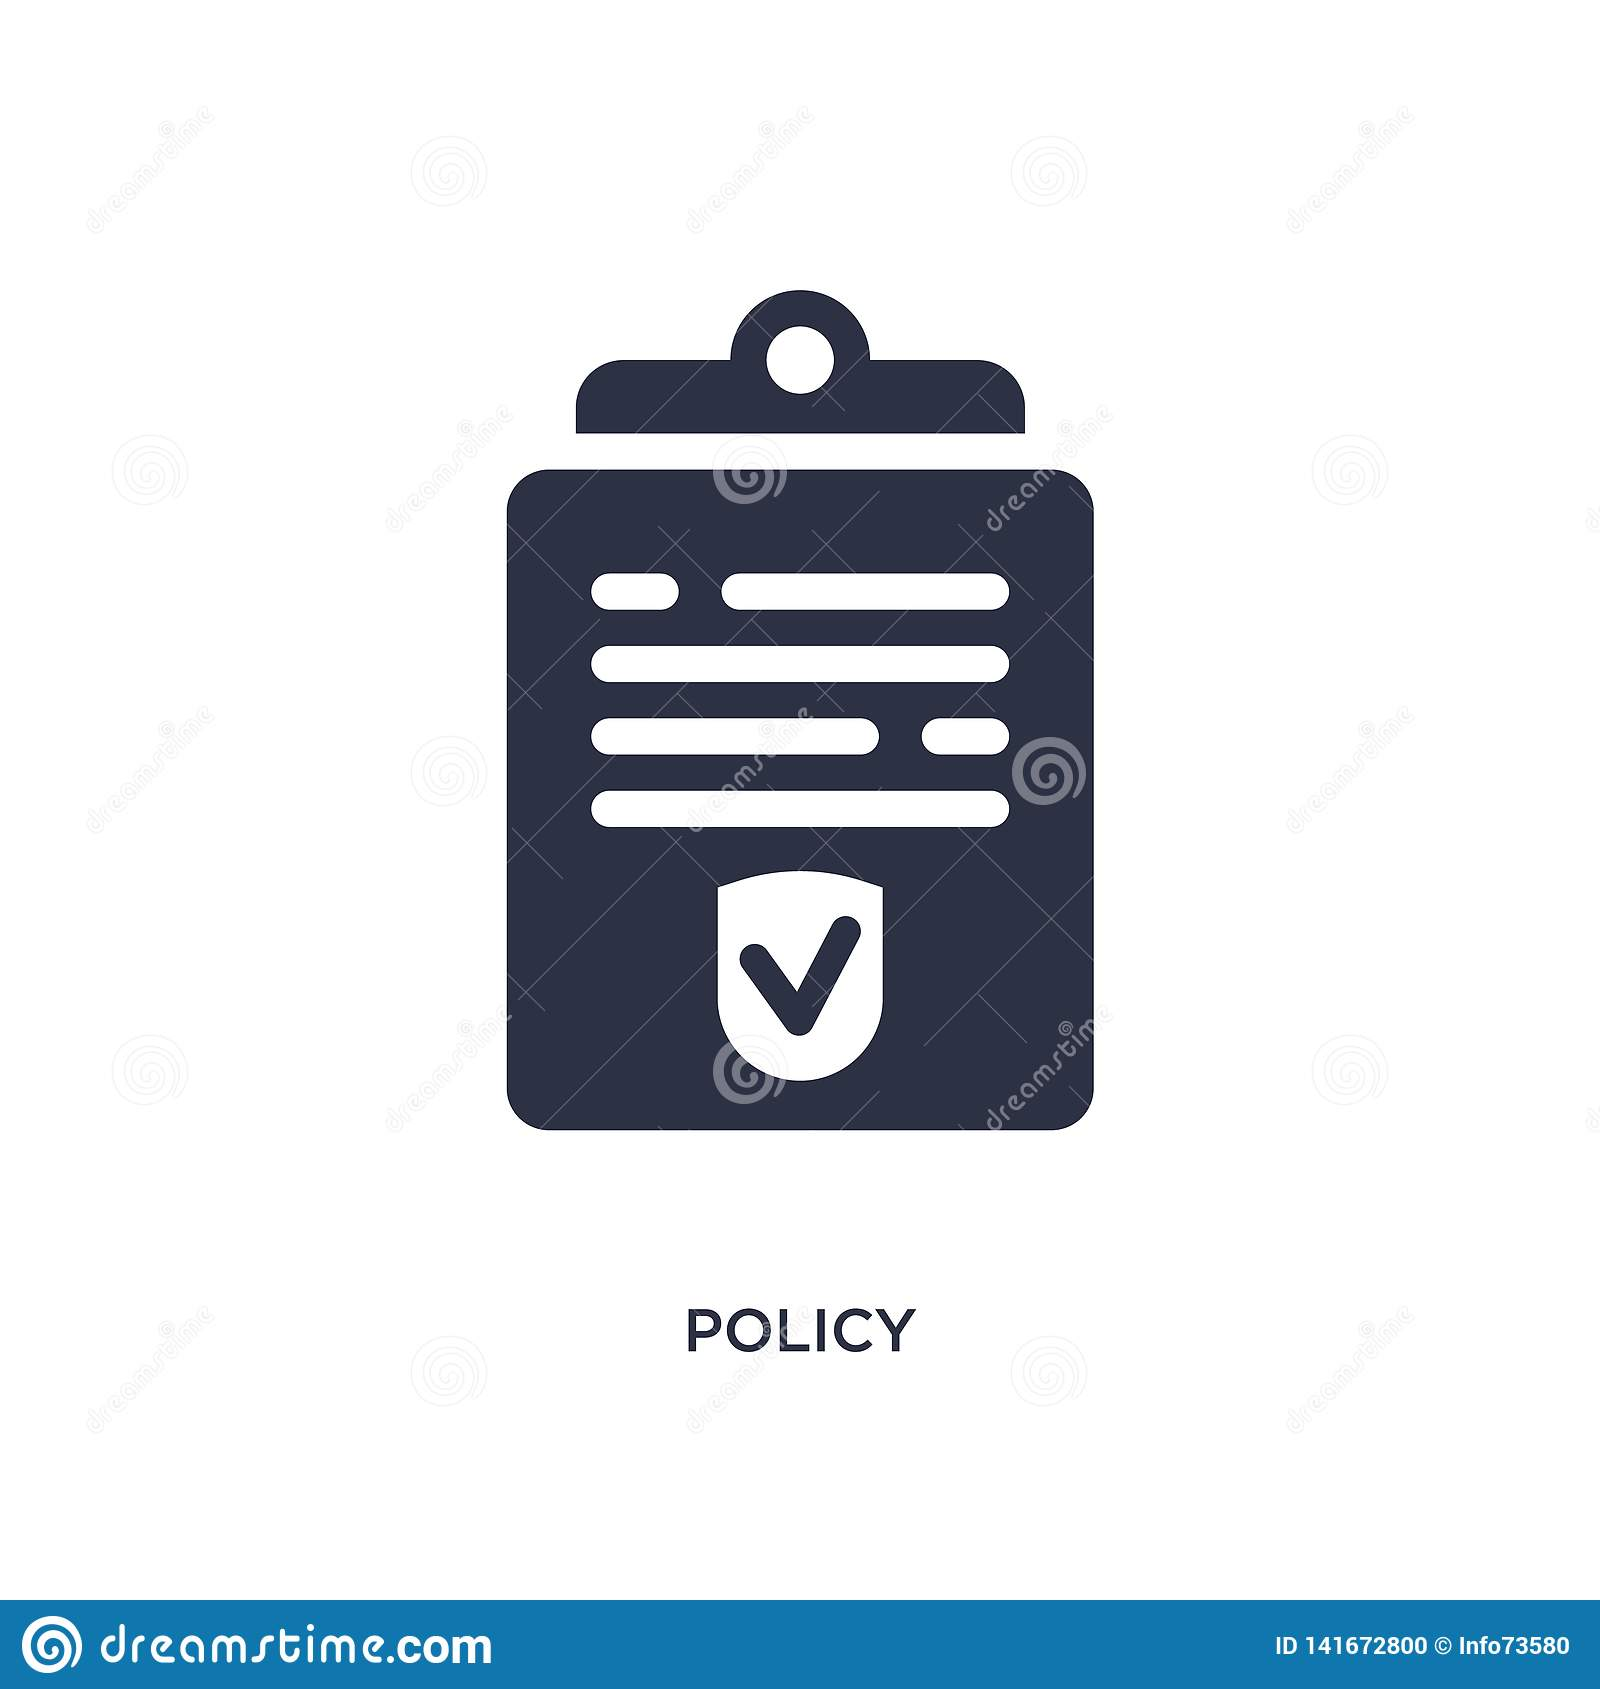 policy icon on white background. Simple element illustration from law and justice concept